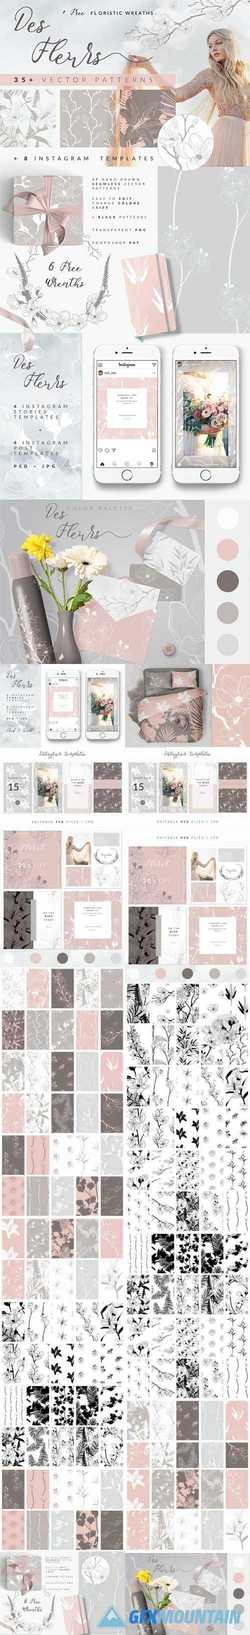 35+ PATTERNS & 8 INSTAGRAM TEMPLATES - 2344548